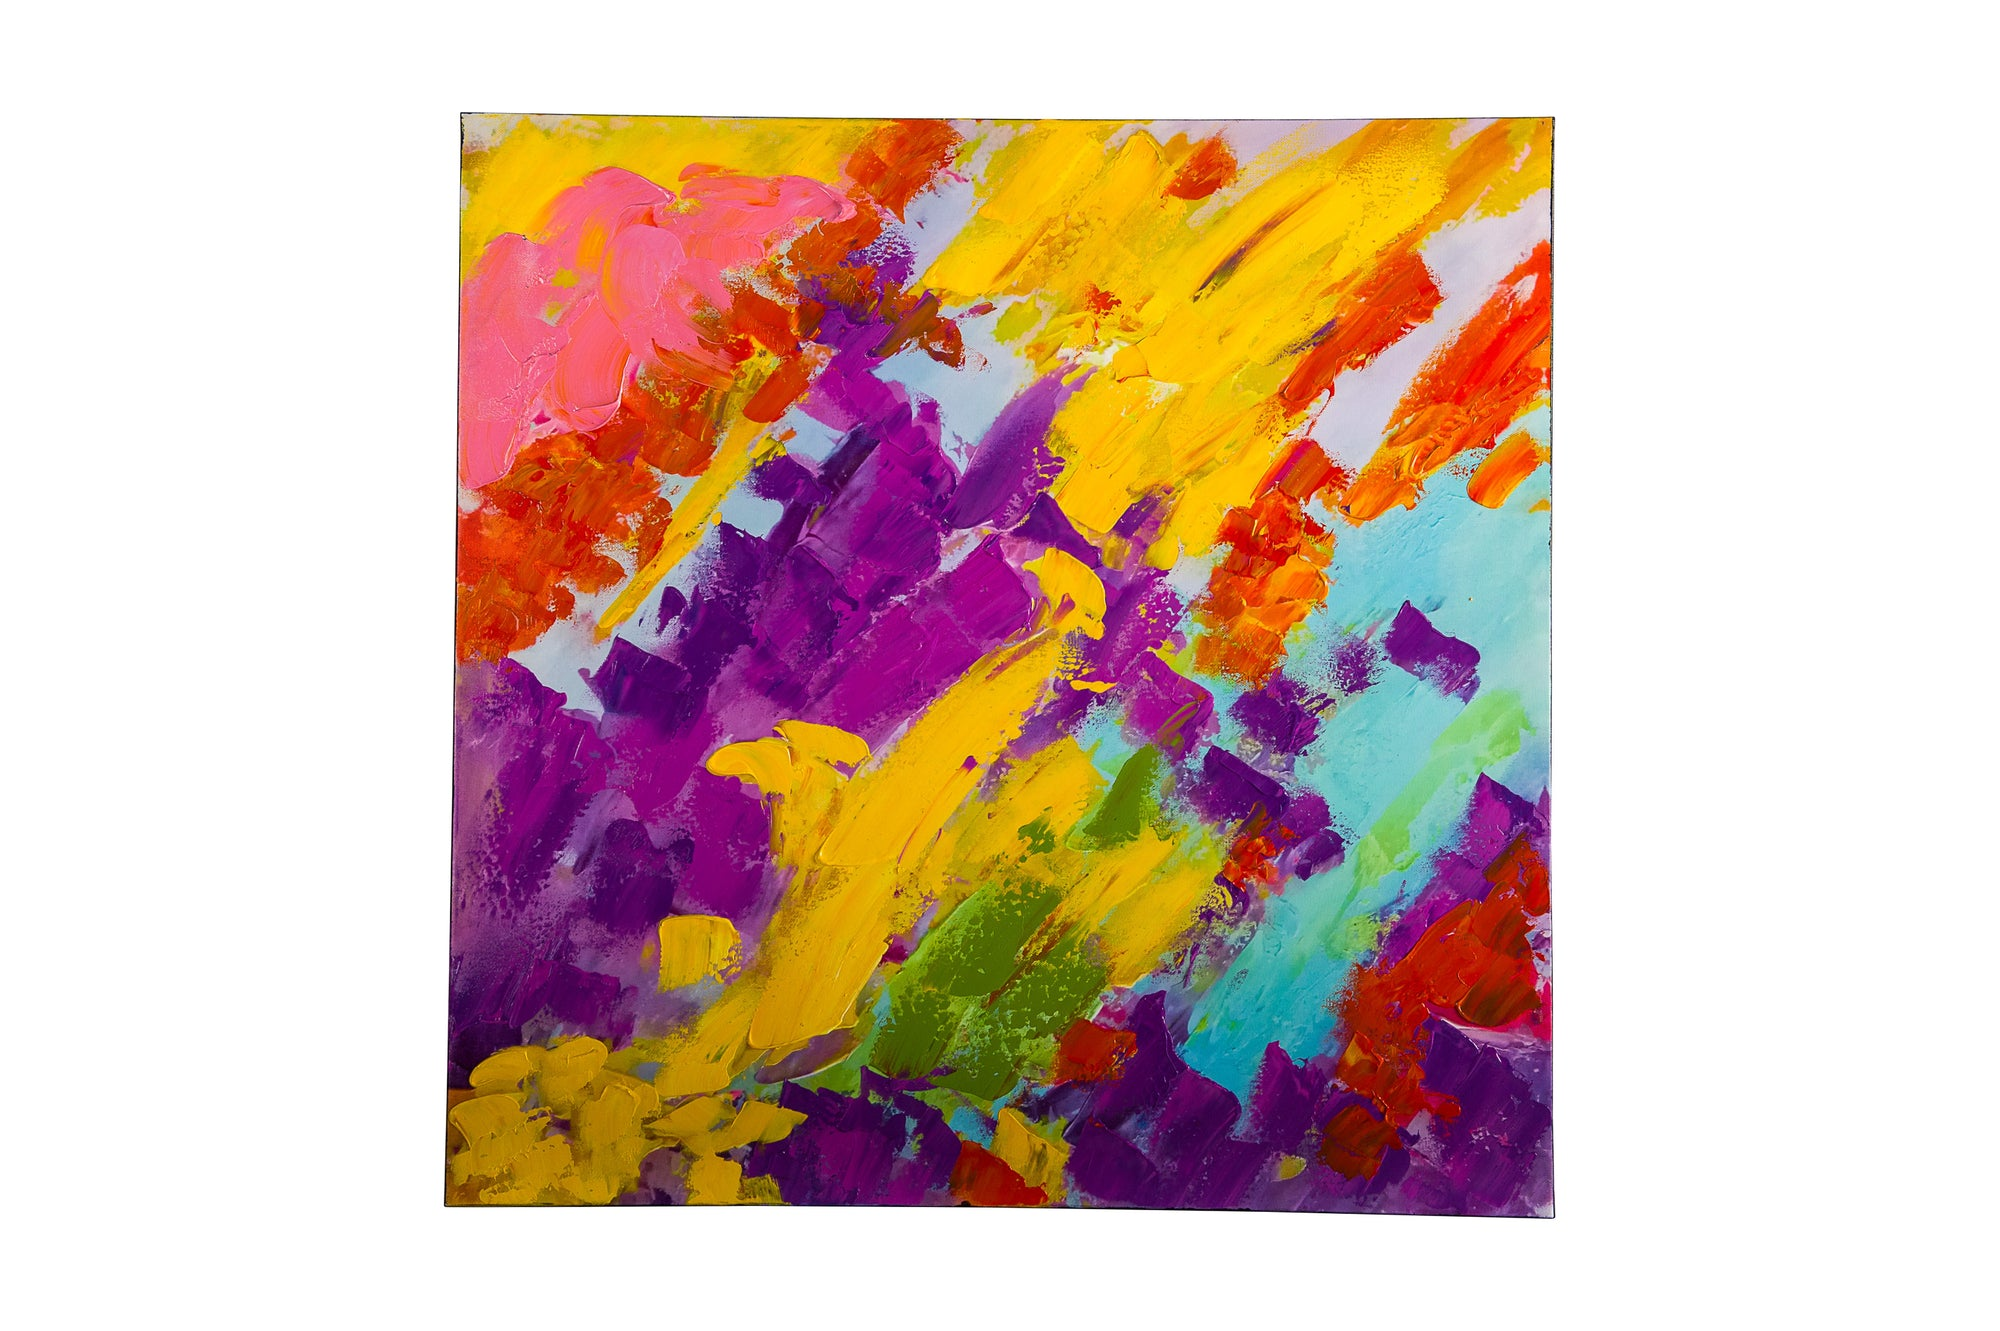 hue multi yellow abstract hand painted wall art on canvas - Fervor + Hue